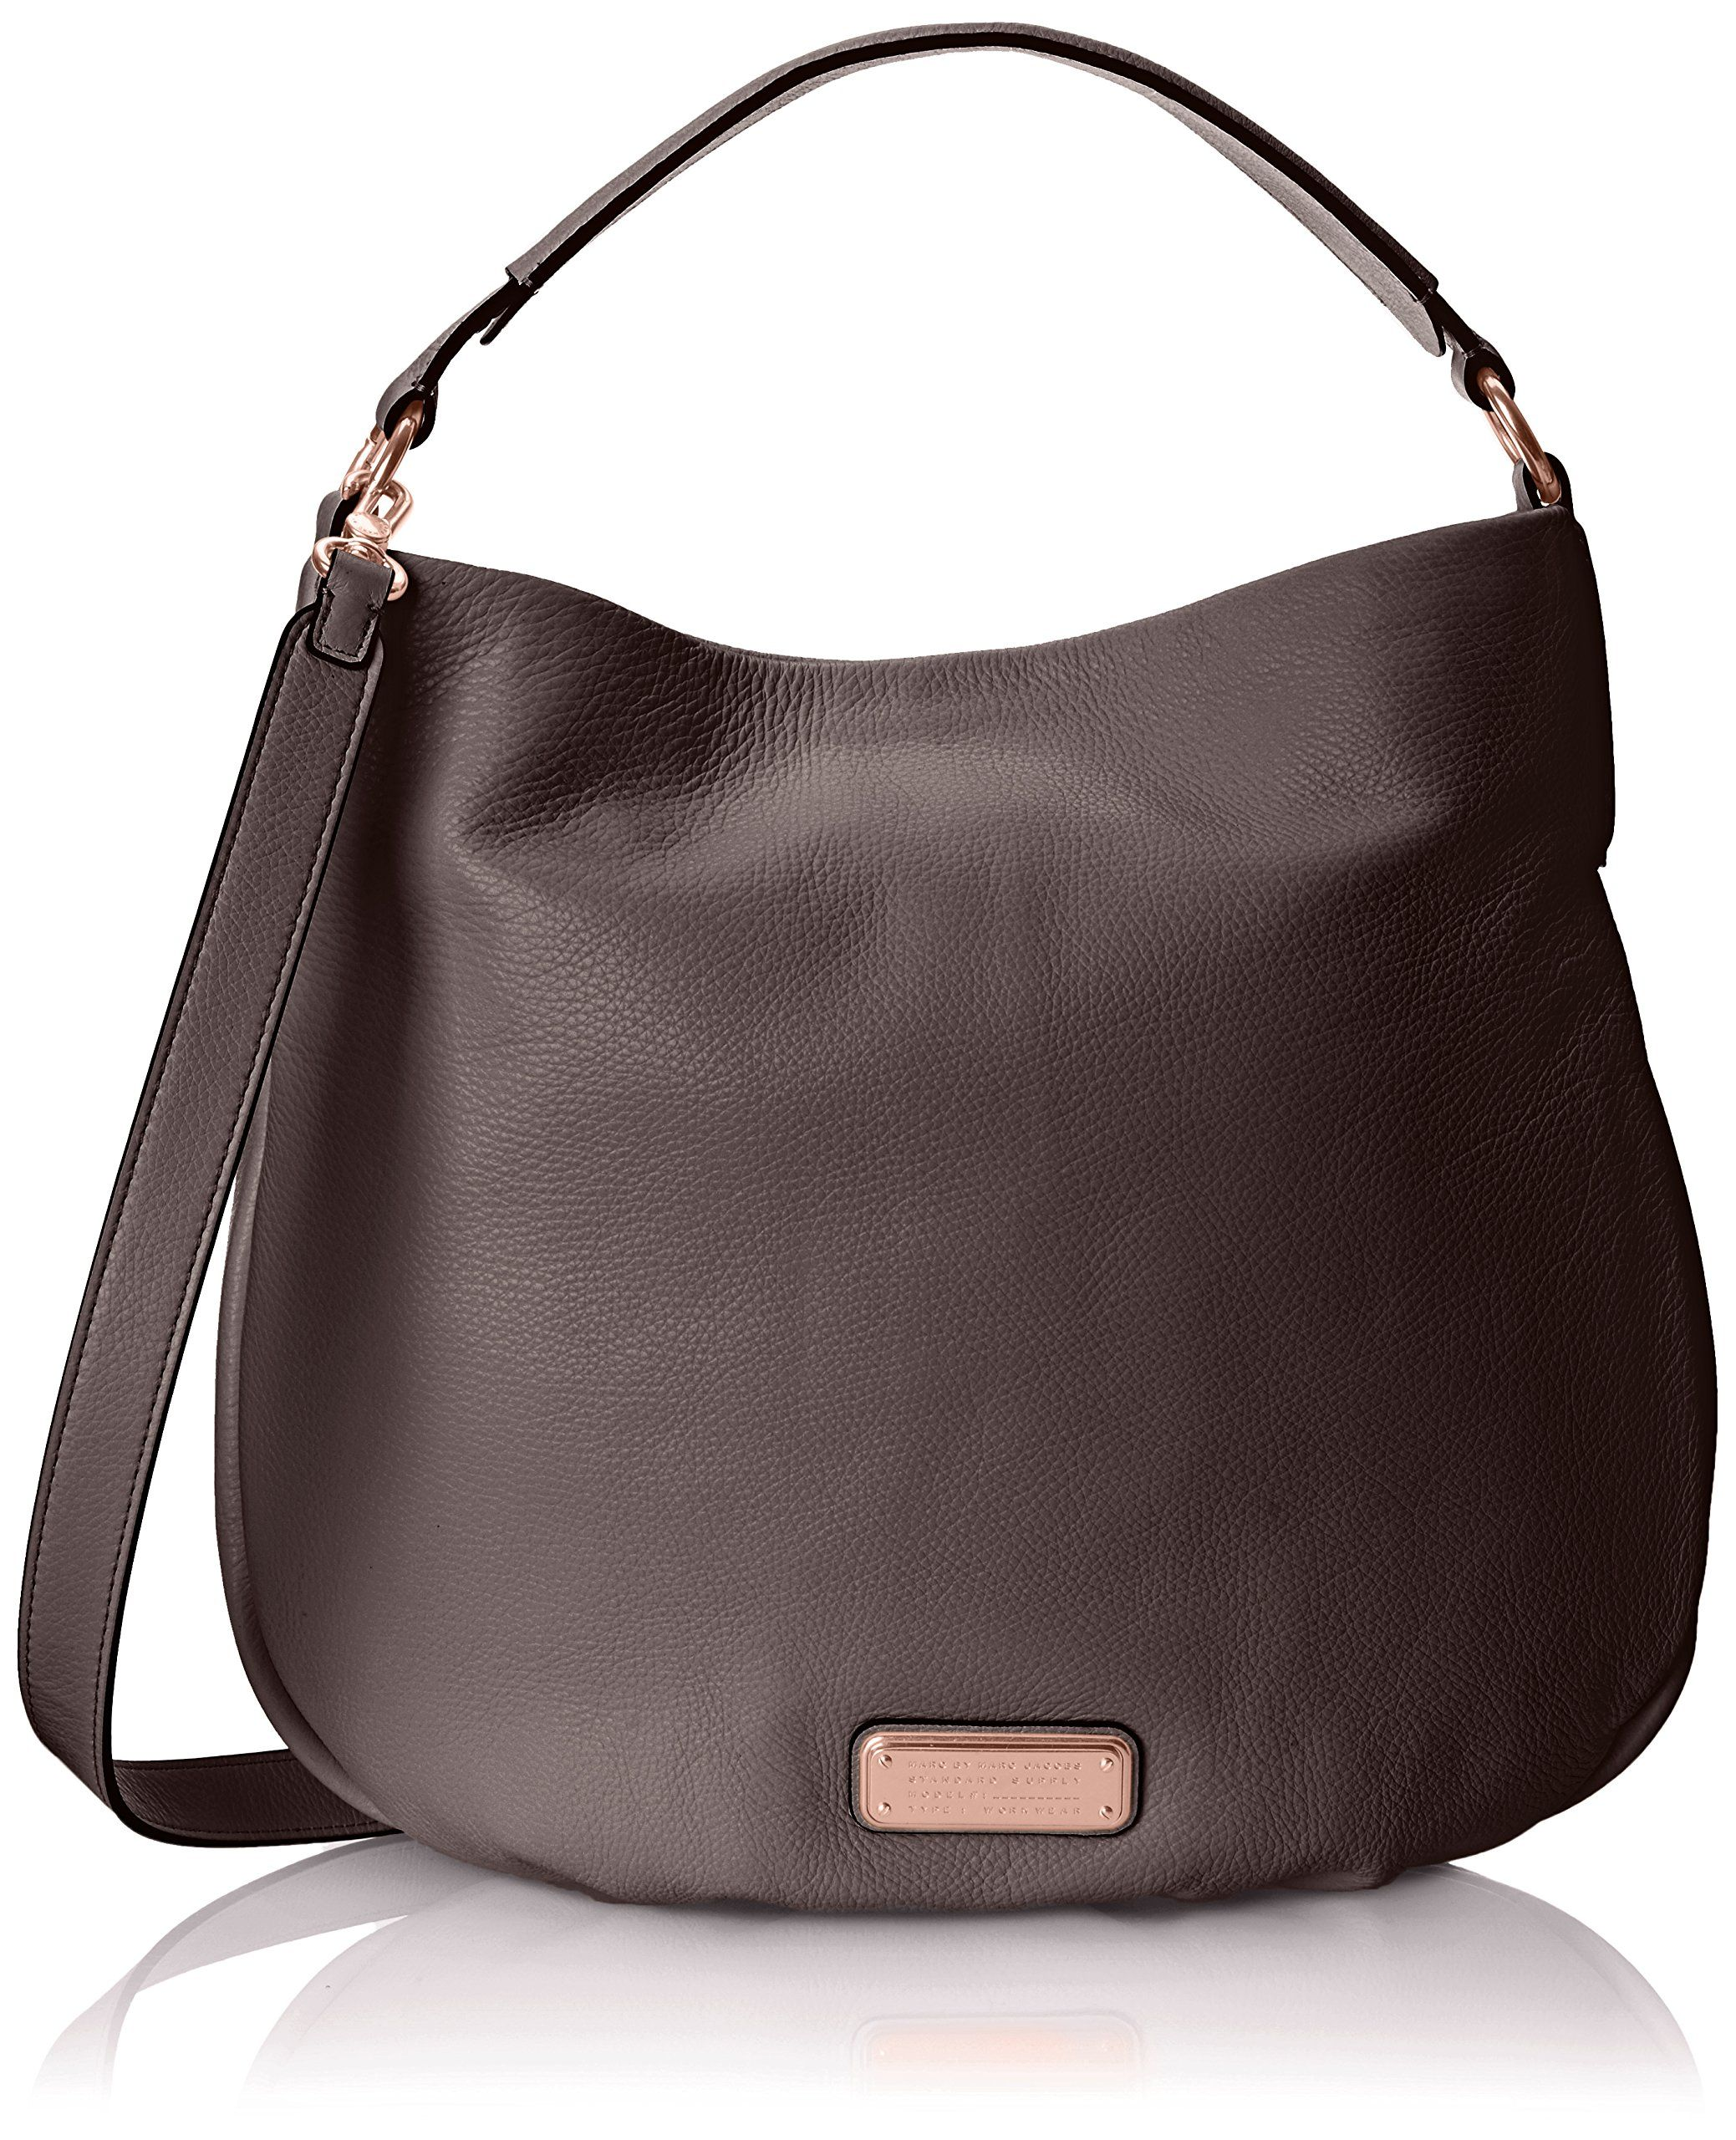 Marc by Marc Jacobs New Q Hillier Hobo Bag 86381d6edf